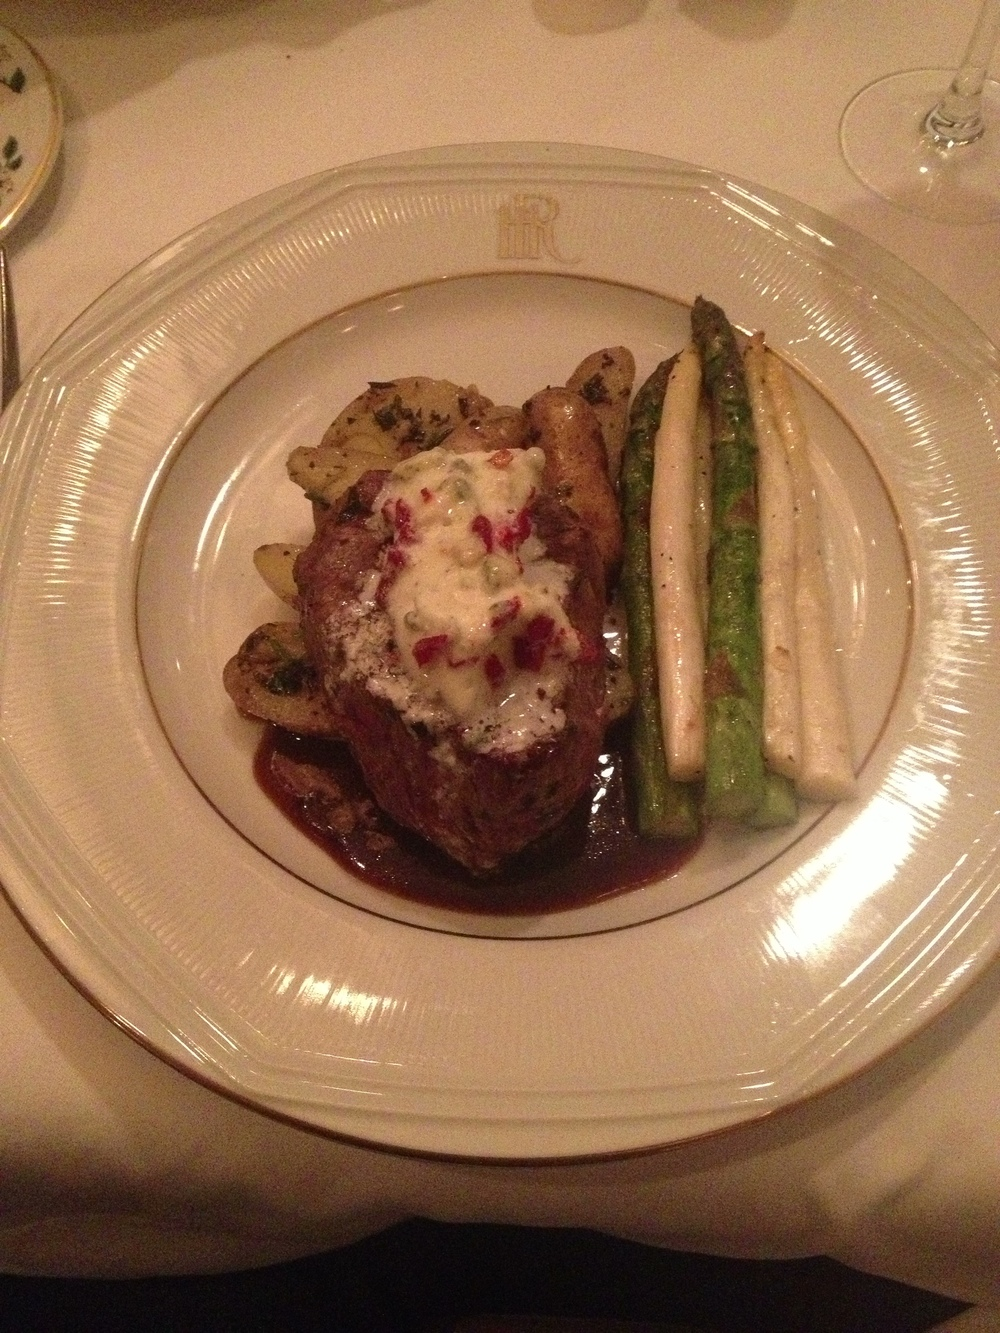 Grilled Filet Mignon